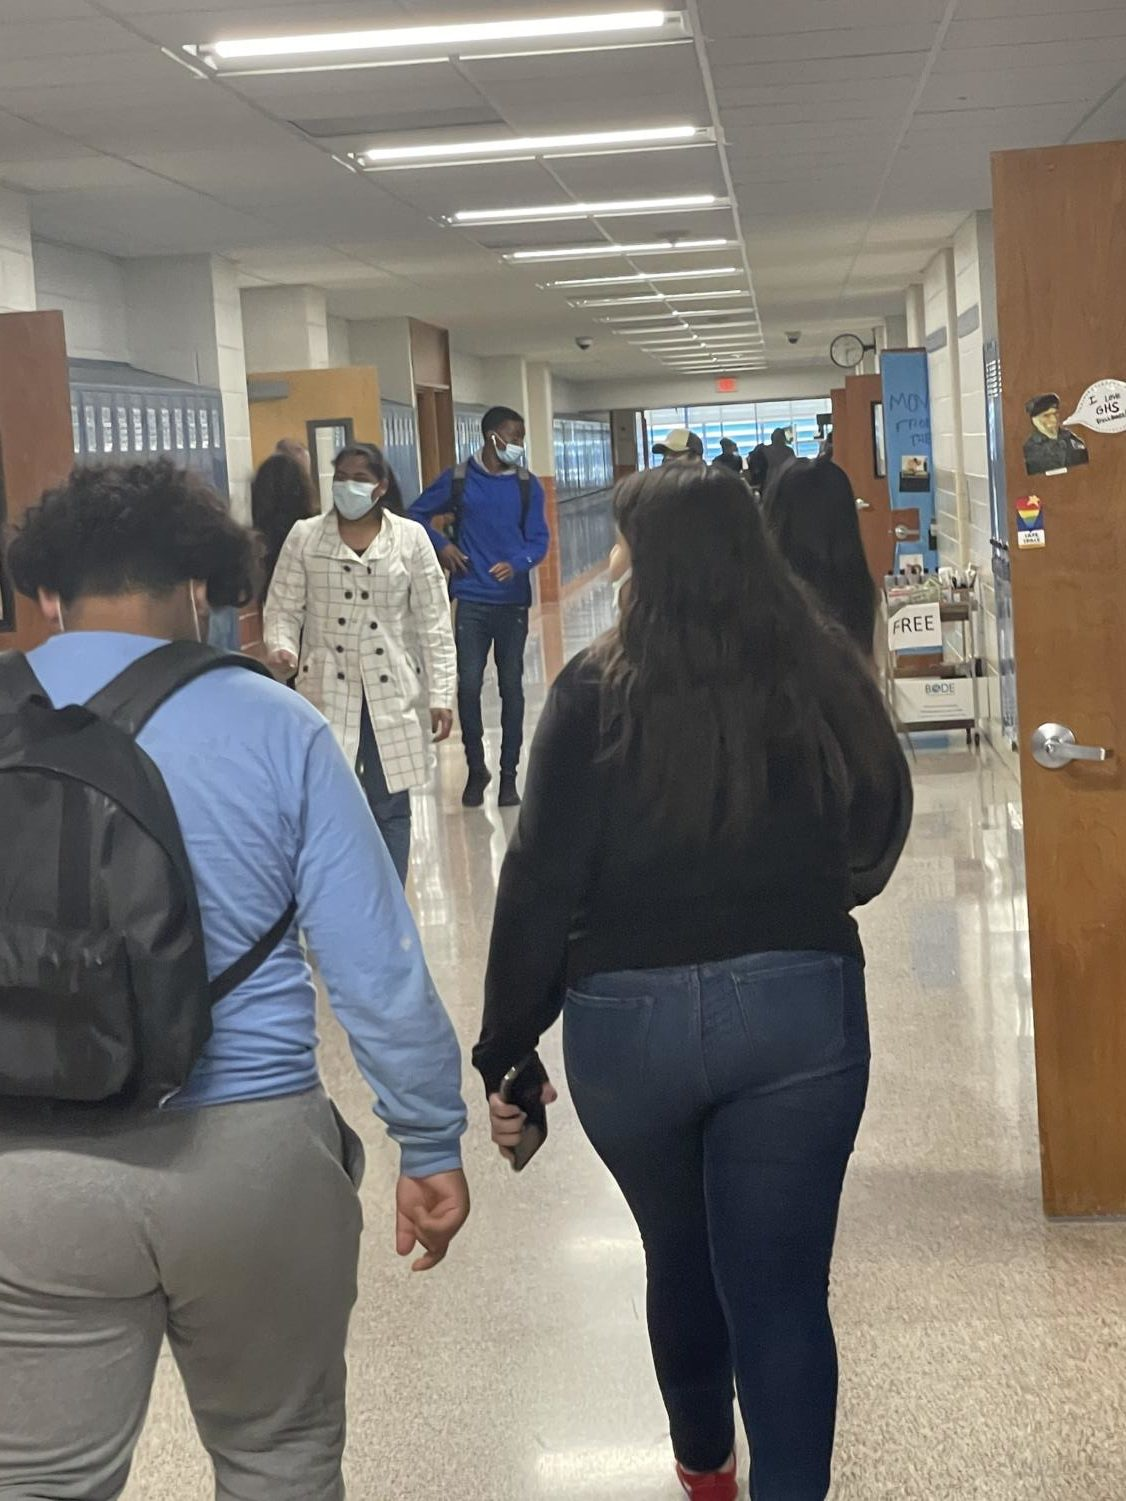 Students walking in the halls while keeping their masks up and over their noses.